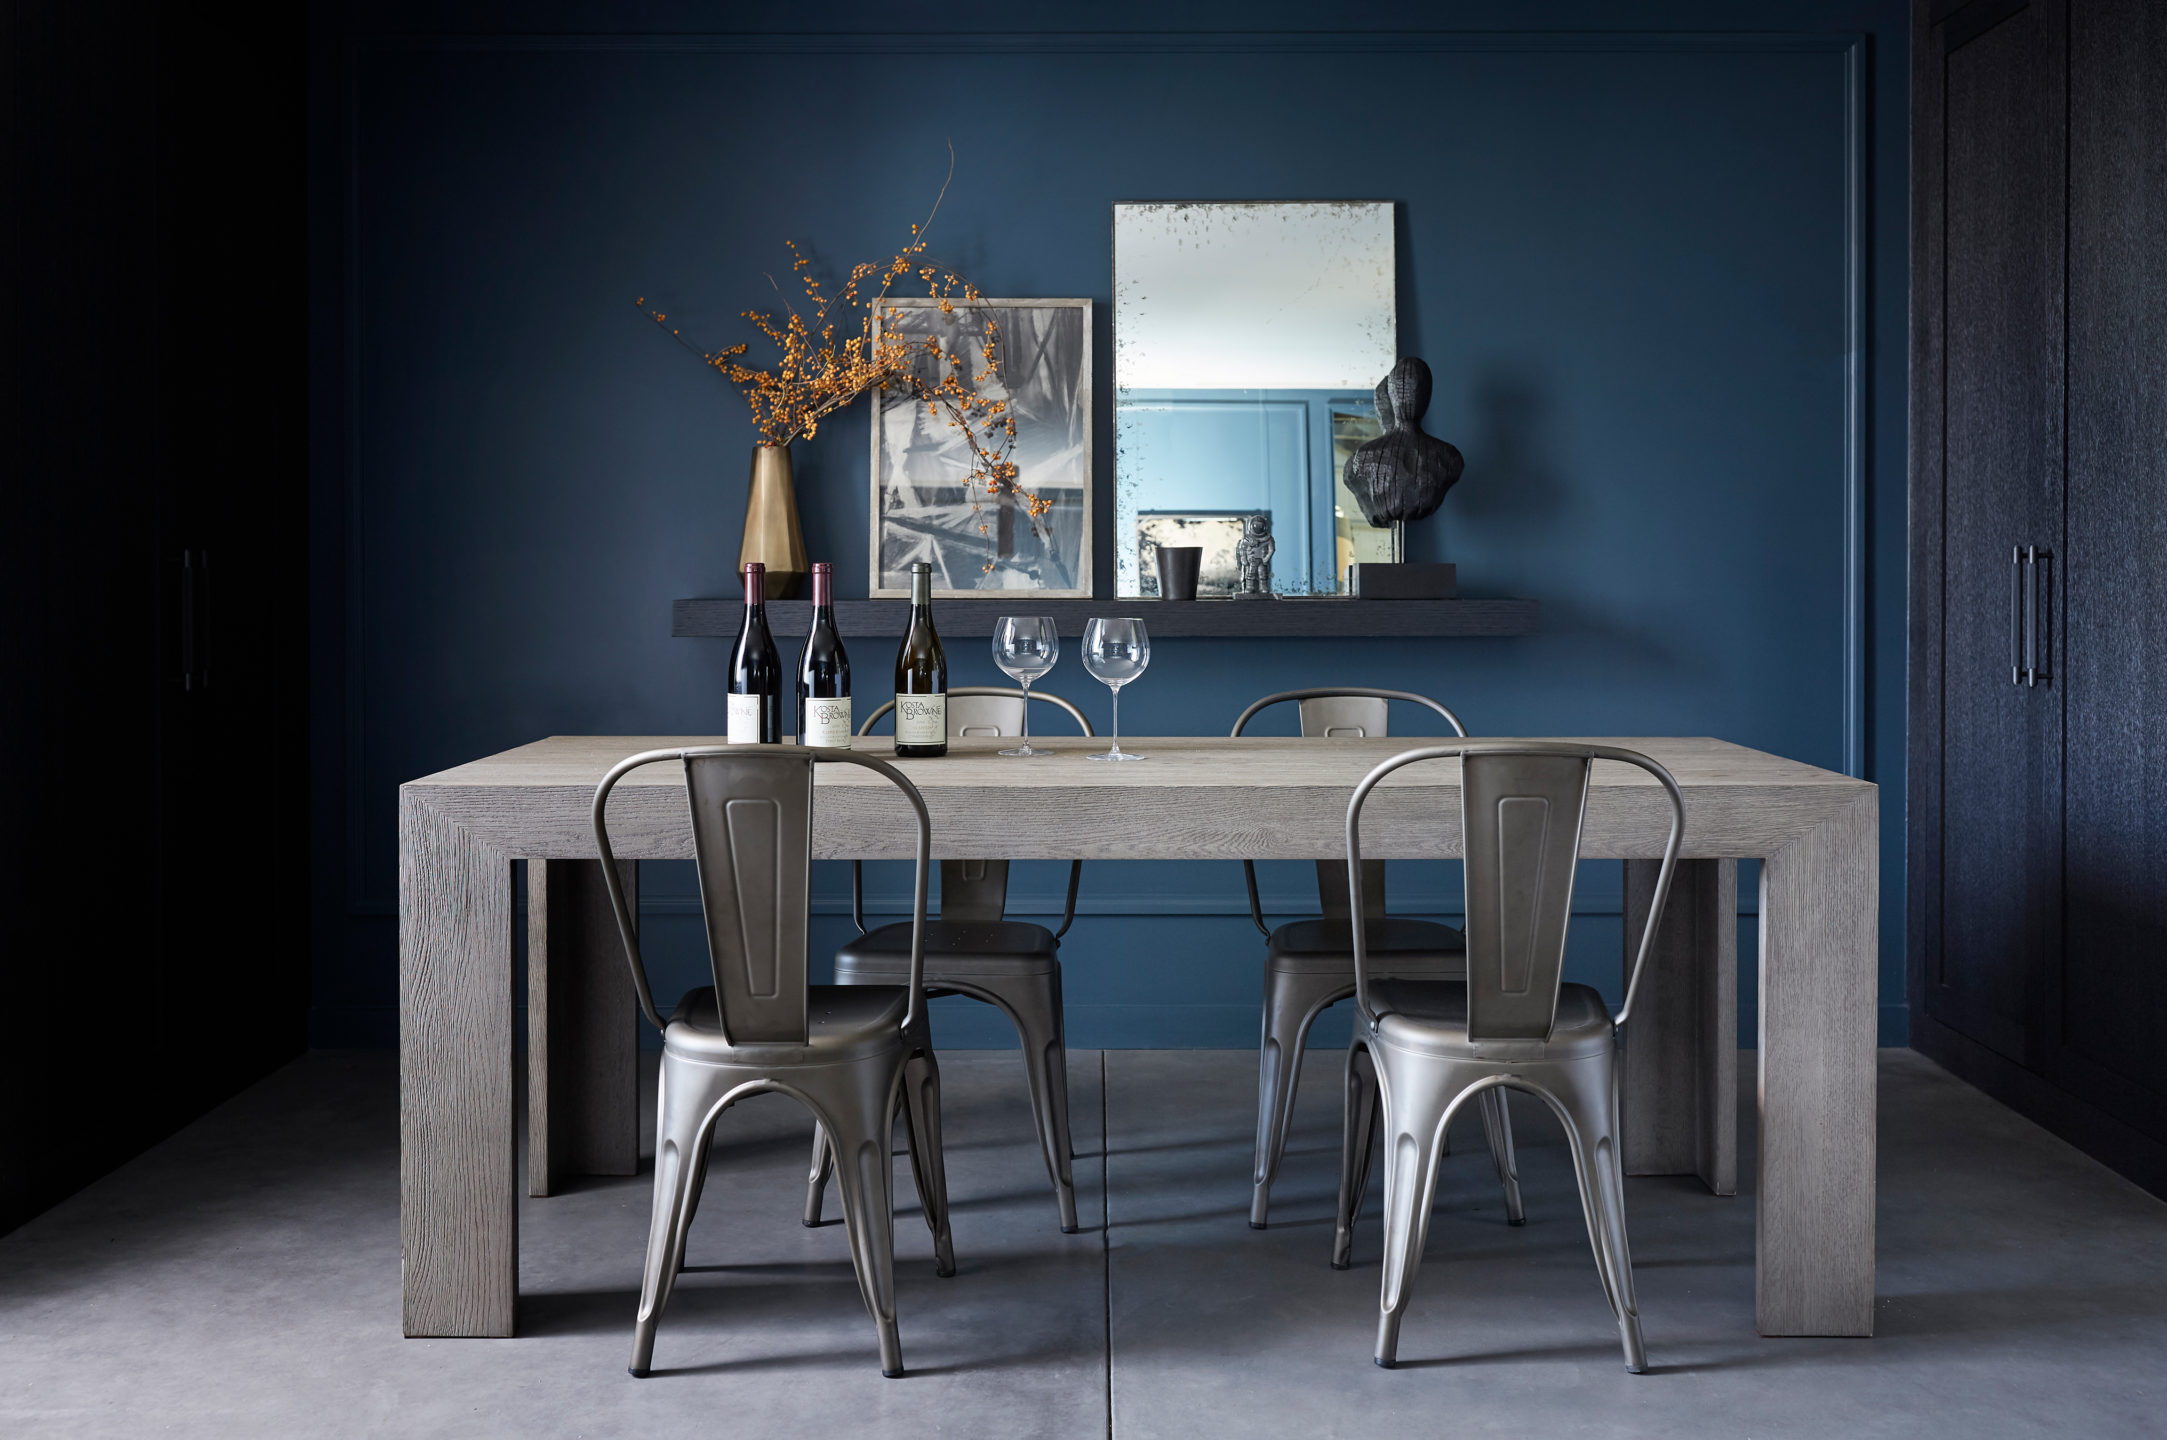 Jennifer_robins_interiors_projects_kosta_browne_winery_3KostaBrowne.LWD.JRI_011_dining_room_DR_table